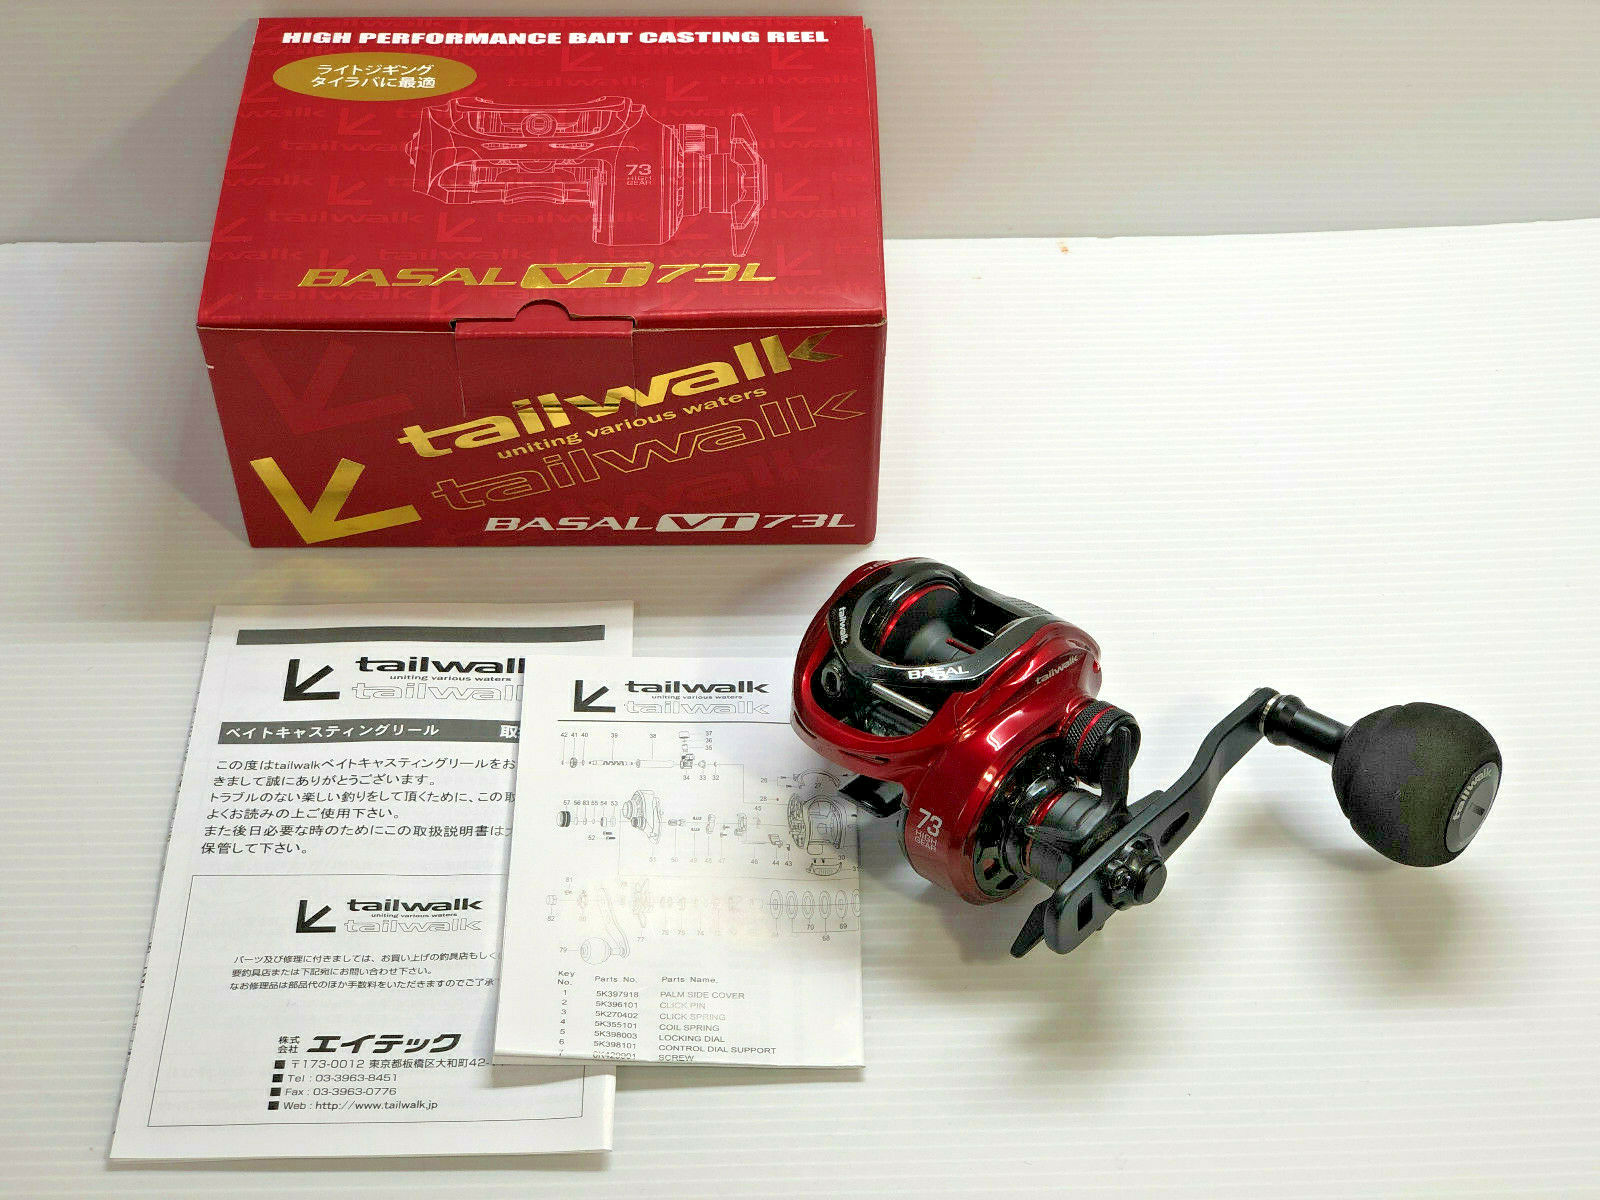 TalWalk BASAL VT73L LEFT   - Free Shipping from Japan